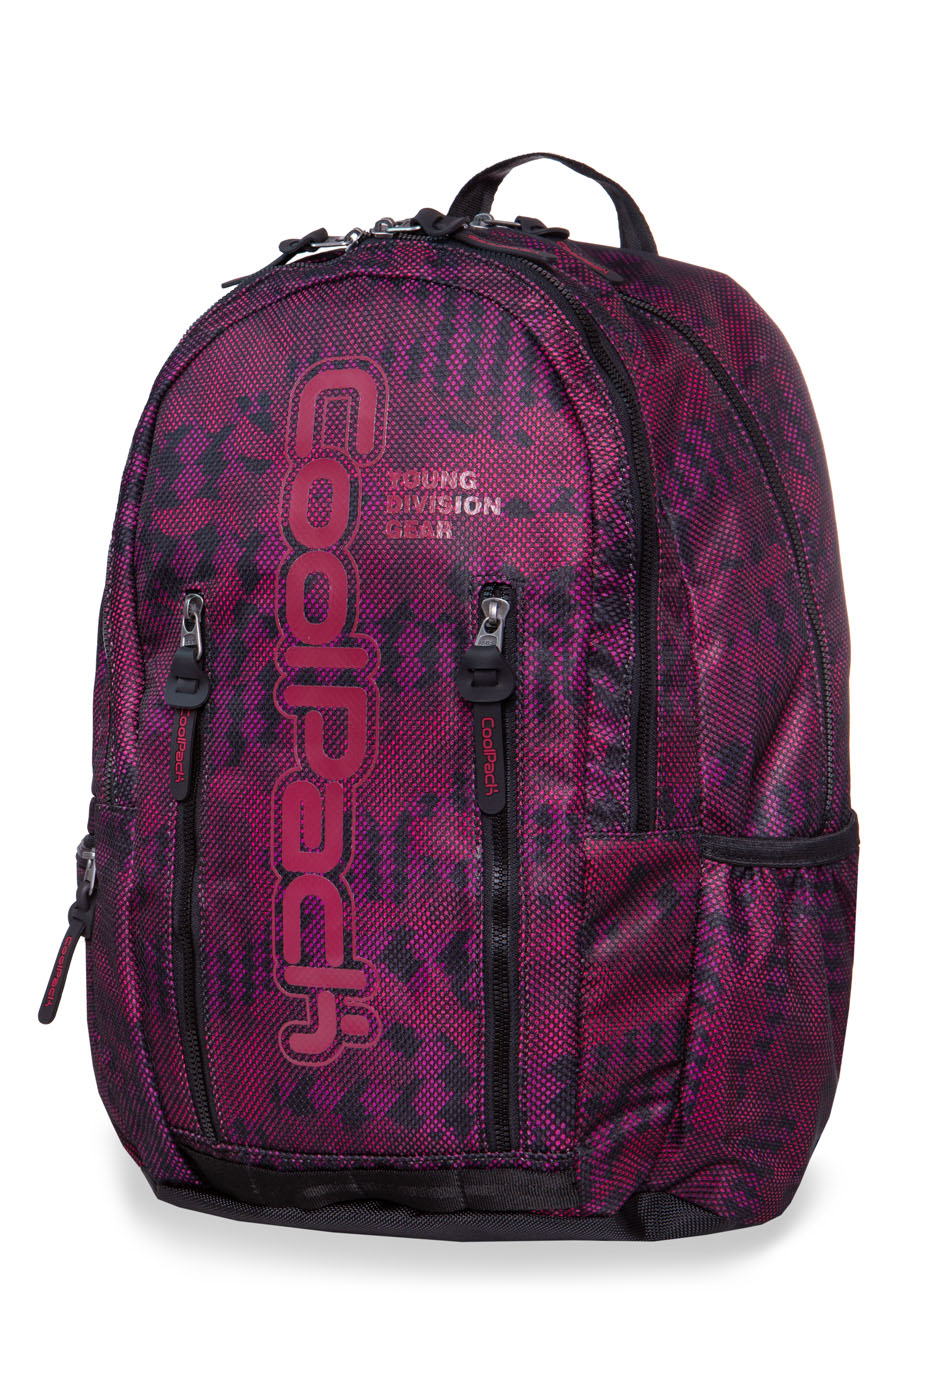 Coolpack - impact ii - youth backpack - army red